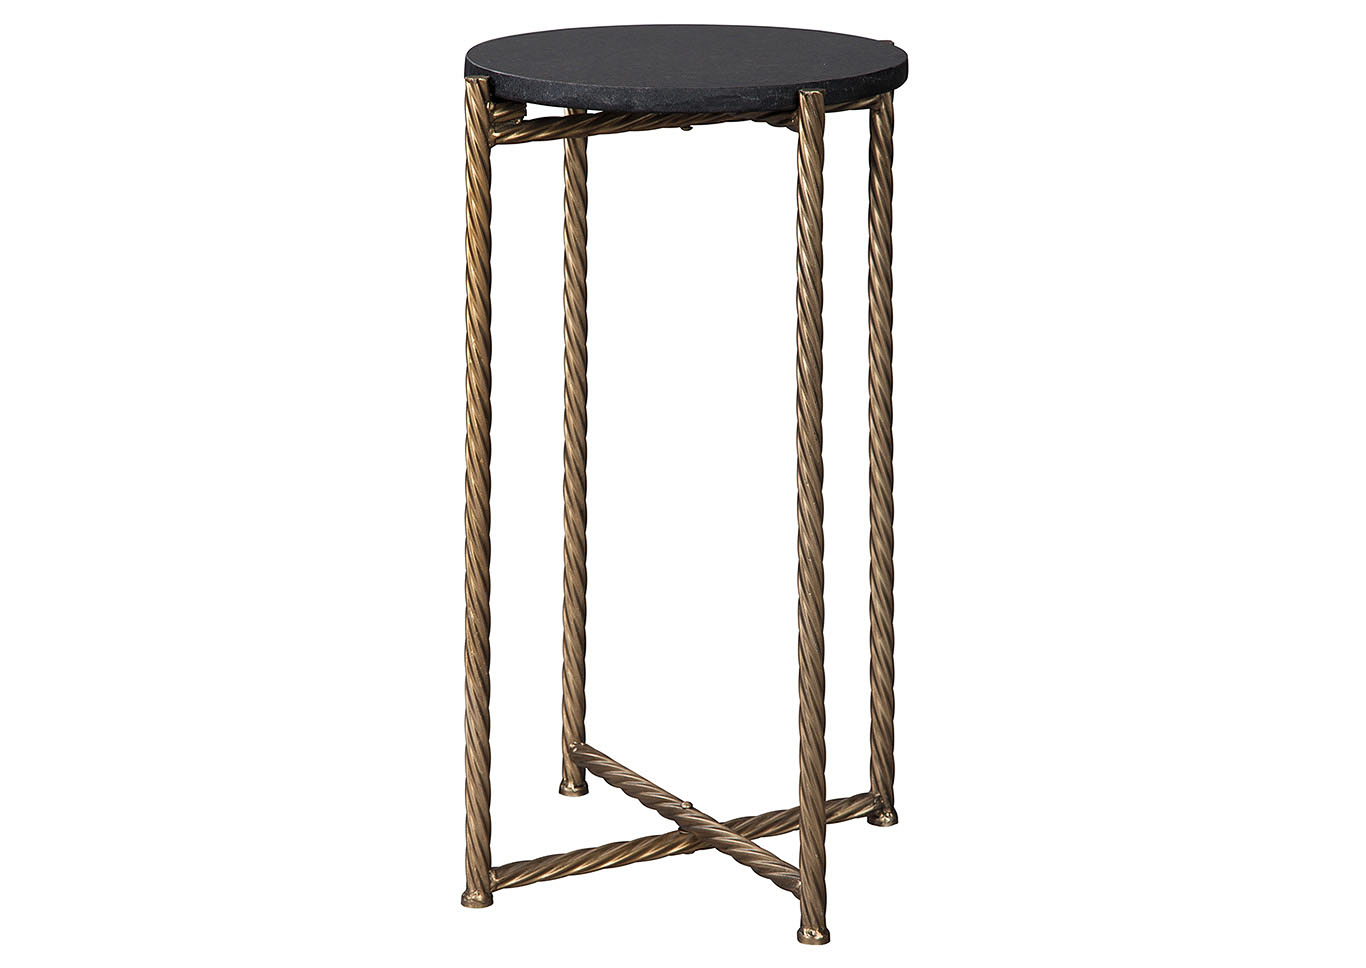 curly furniture brycewood black gold finish accent table signature design ashley entrance wall iron and glass woven outdoor small half circle modern coffee tables edmonton wrought